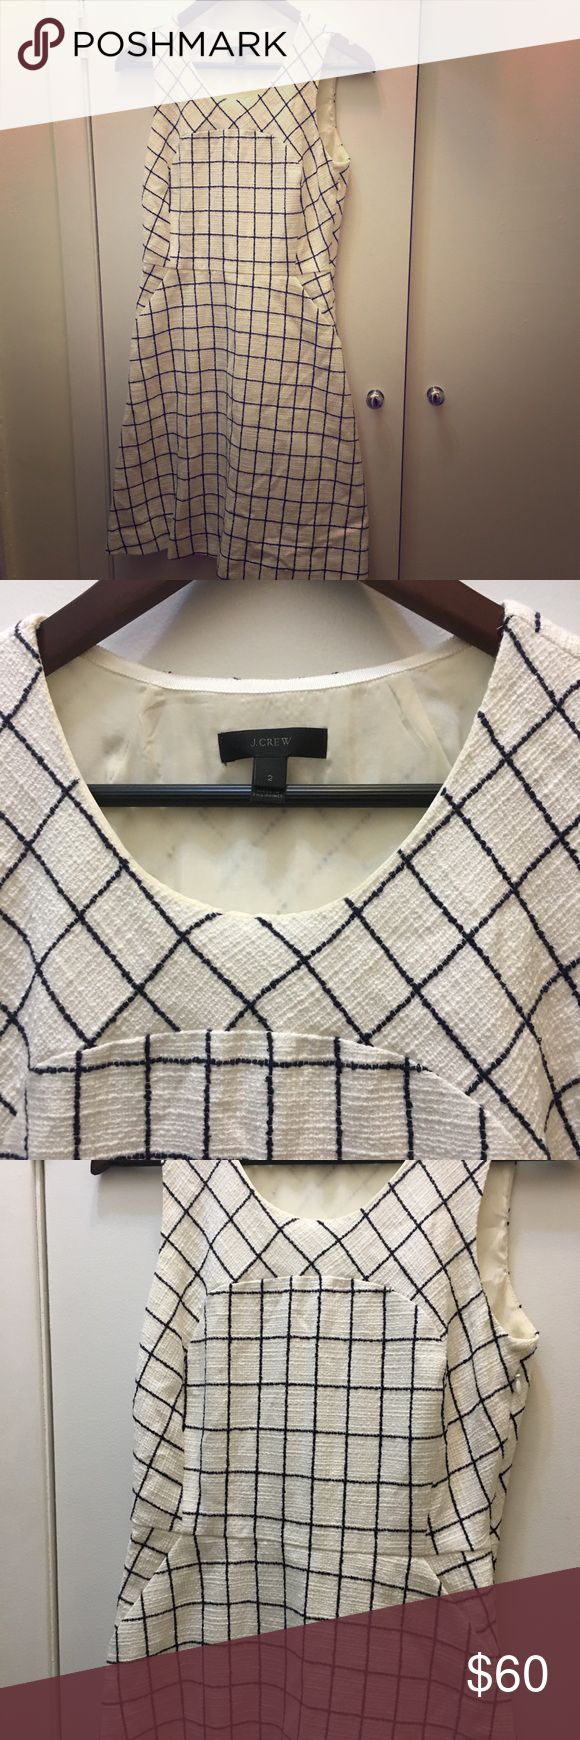 J Crew shirt dress A Line size 2 Like new, worn once! J crew size 2 shift dress in white heavy texture with navy/black lines. Perfect for work, picnic, bridal shower, etc. A line and has pockets!! J. Crew Dresses Midi